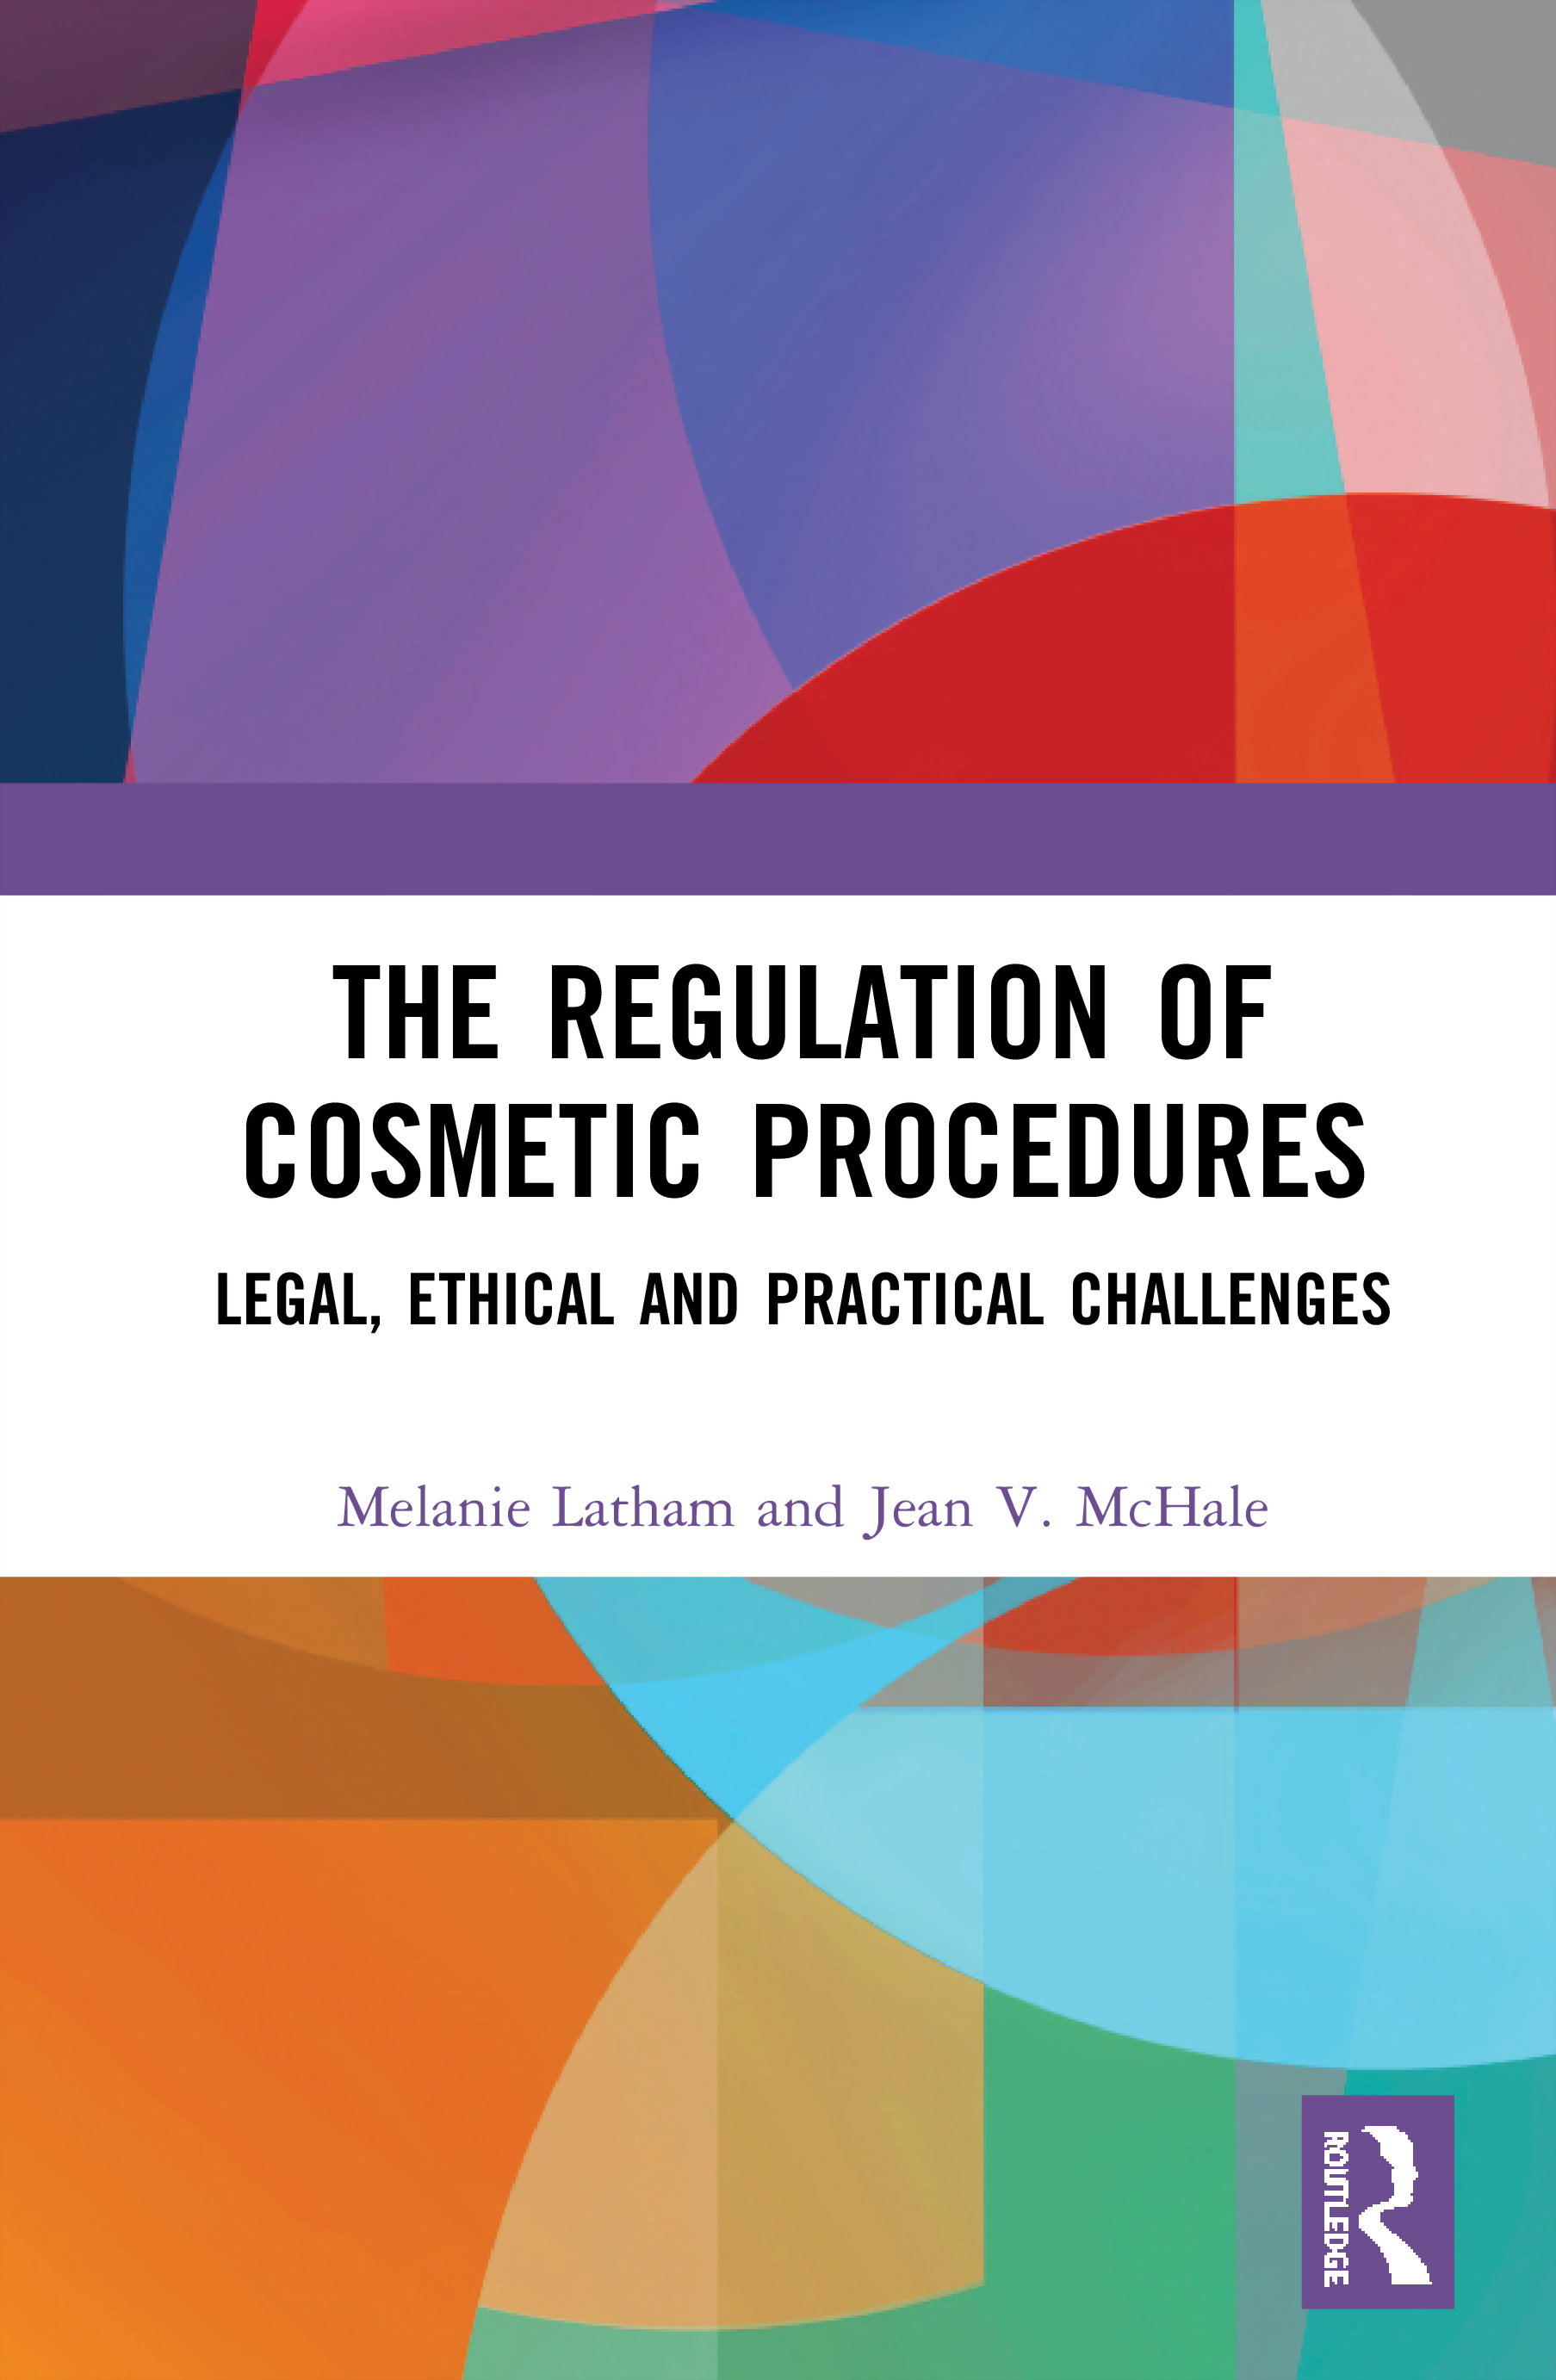 The Regulation of Cosmetic Procedures: Legal, Ethical and Practical Challenges book cover